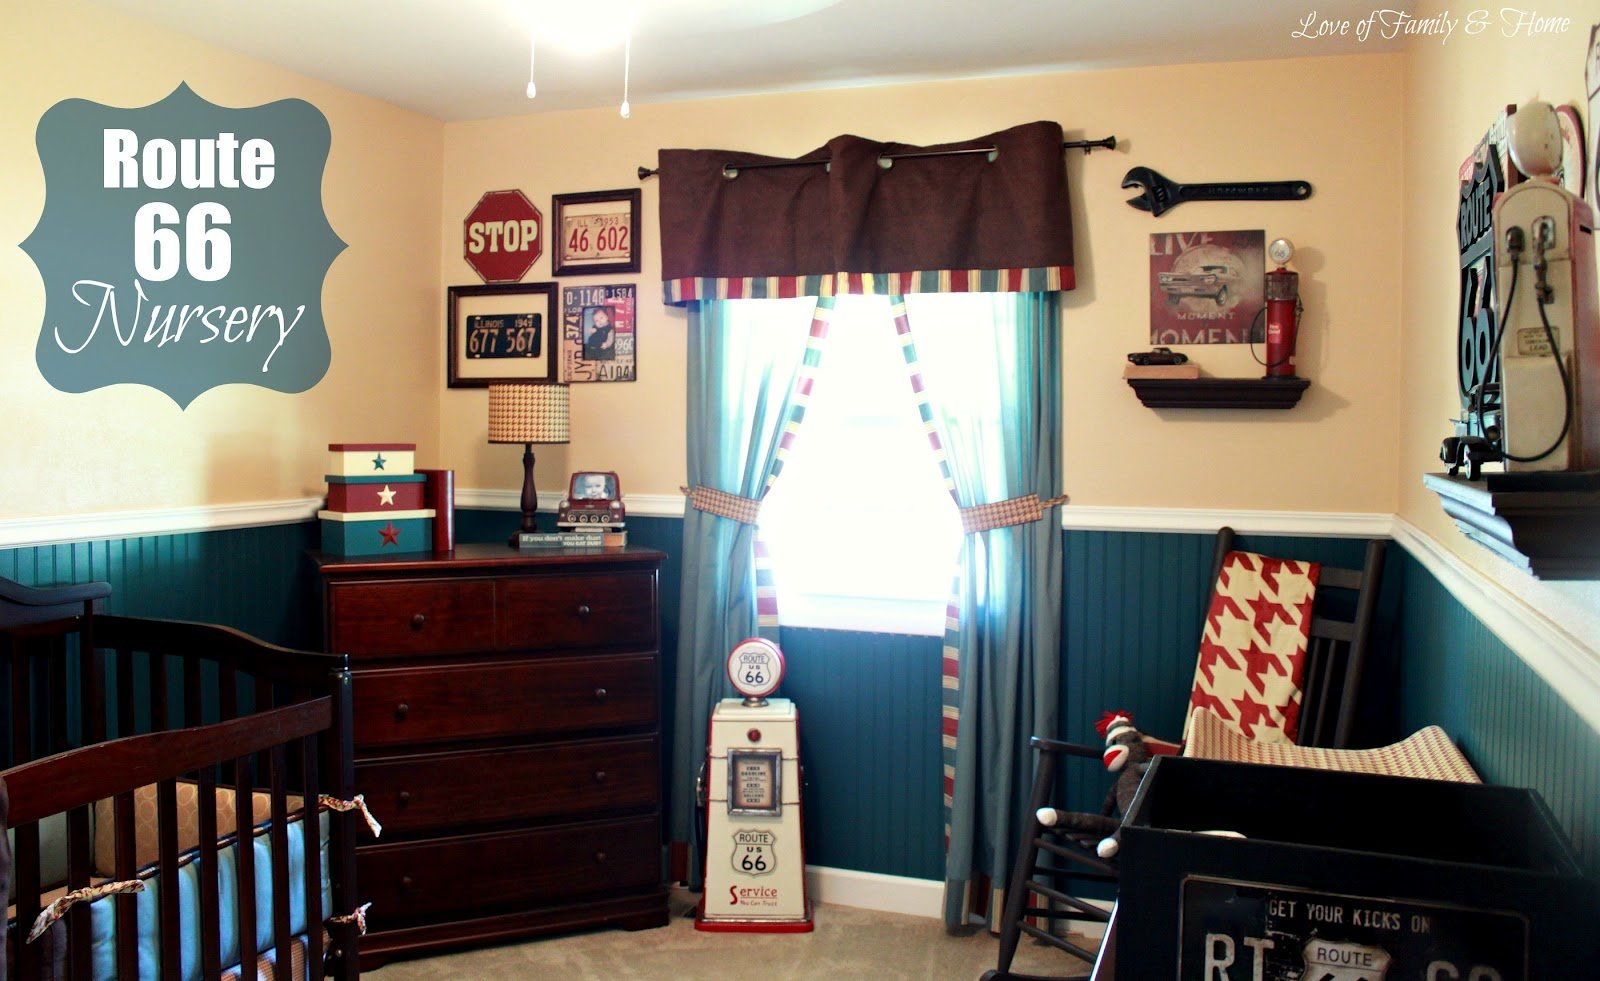 Best Route 66 Nursery Gallery Wall Love Of Family Home With Pictures